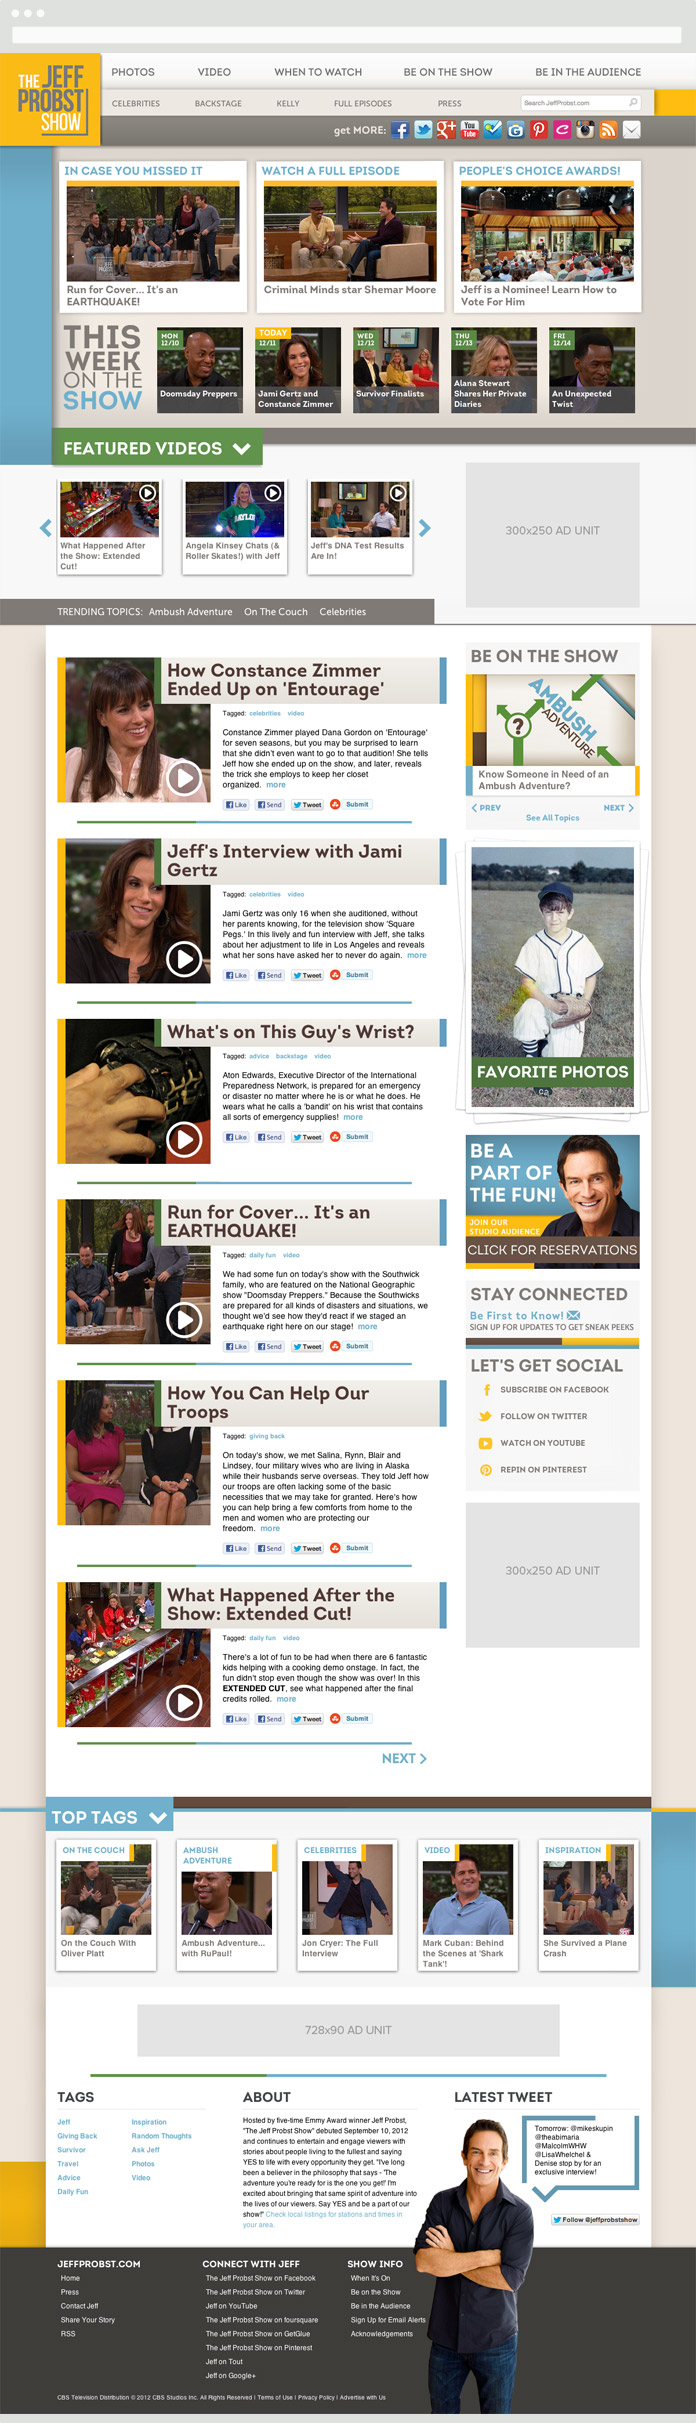 Image of The Jeff Probst Show Homepage